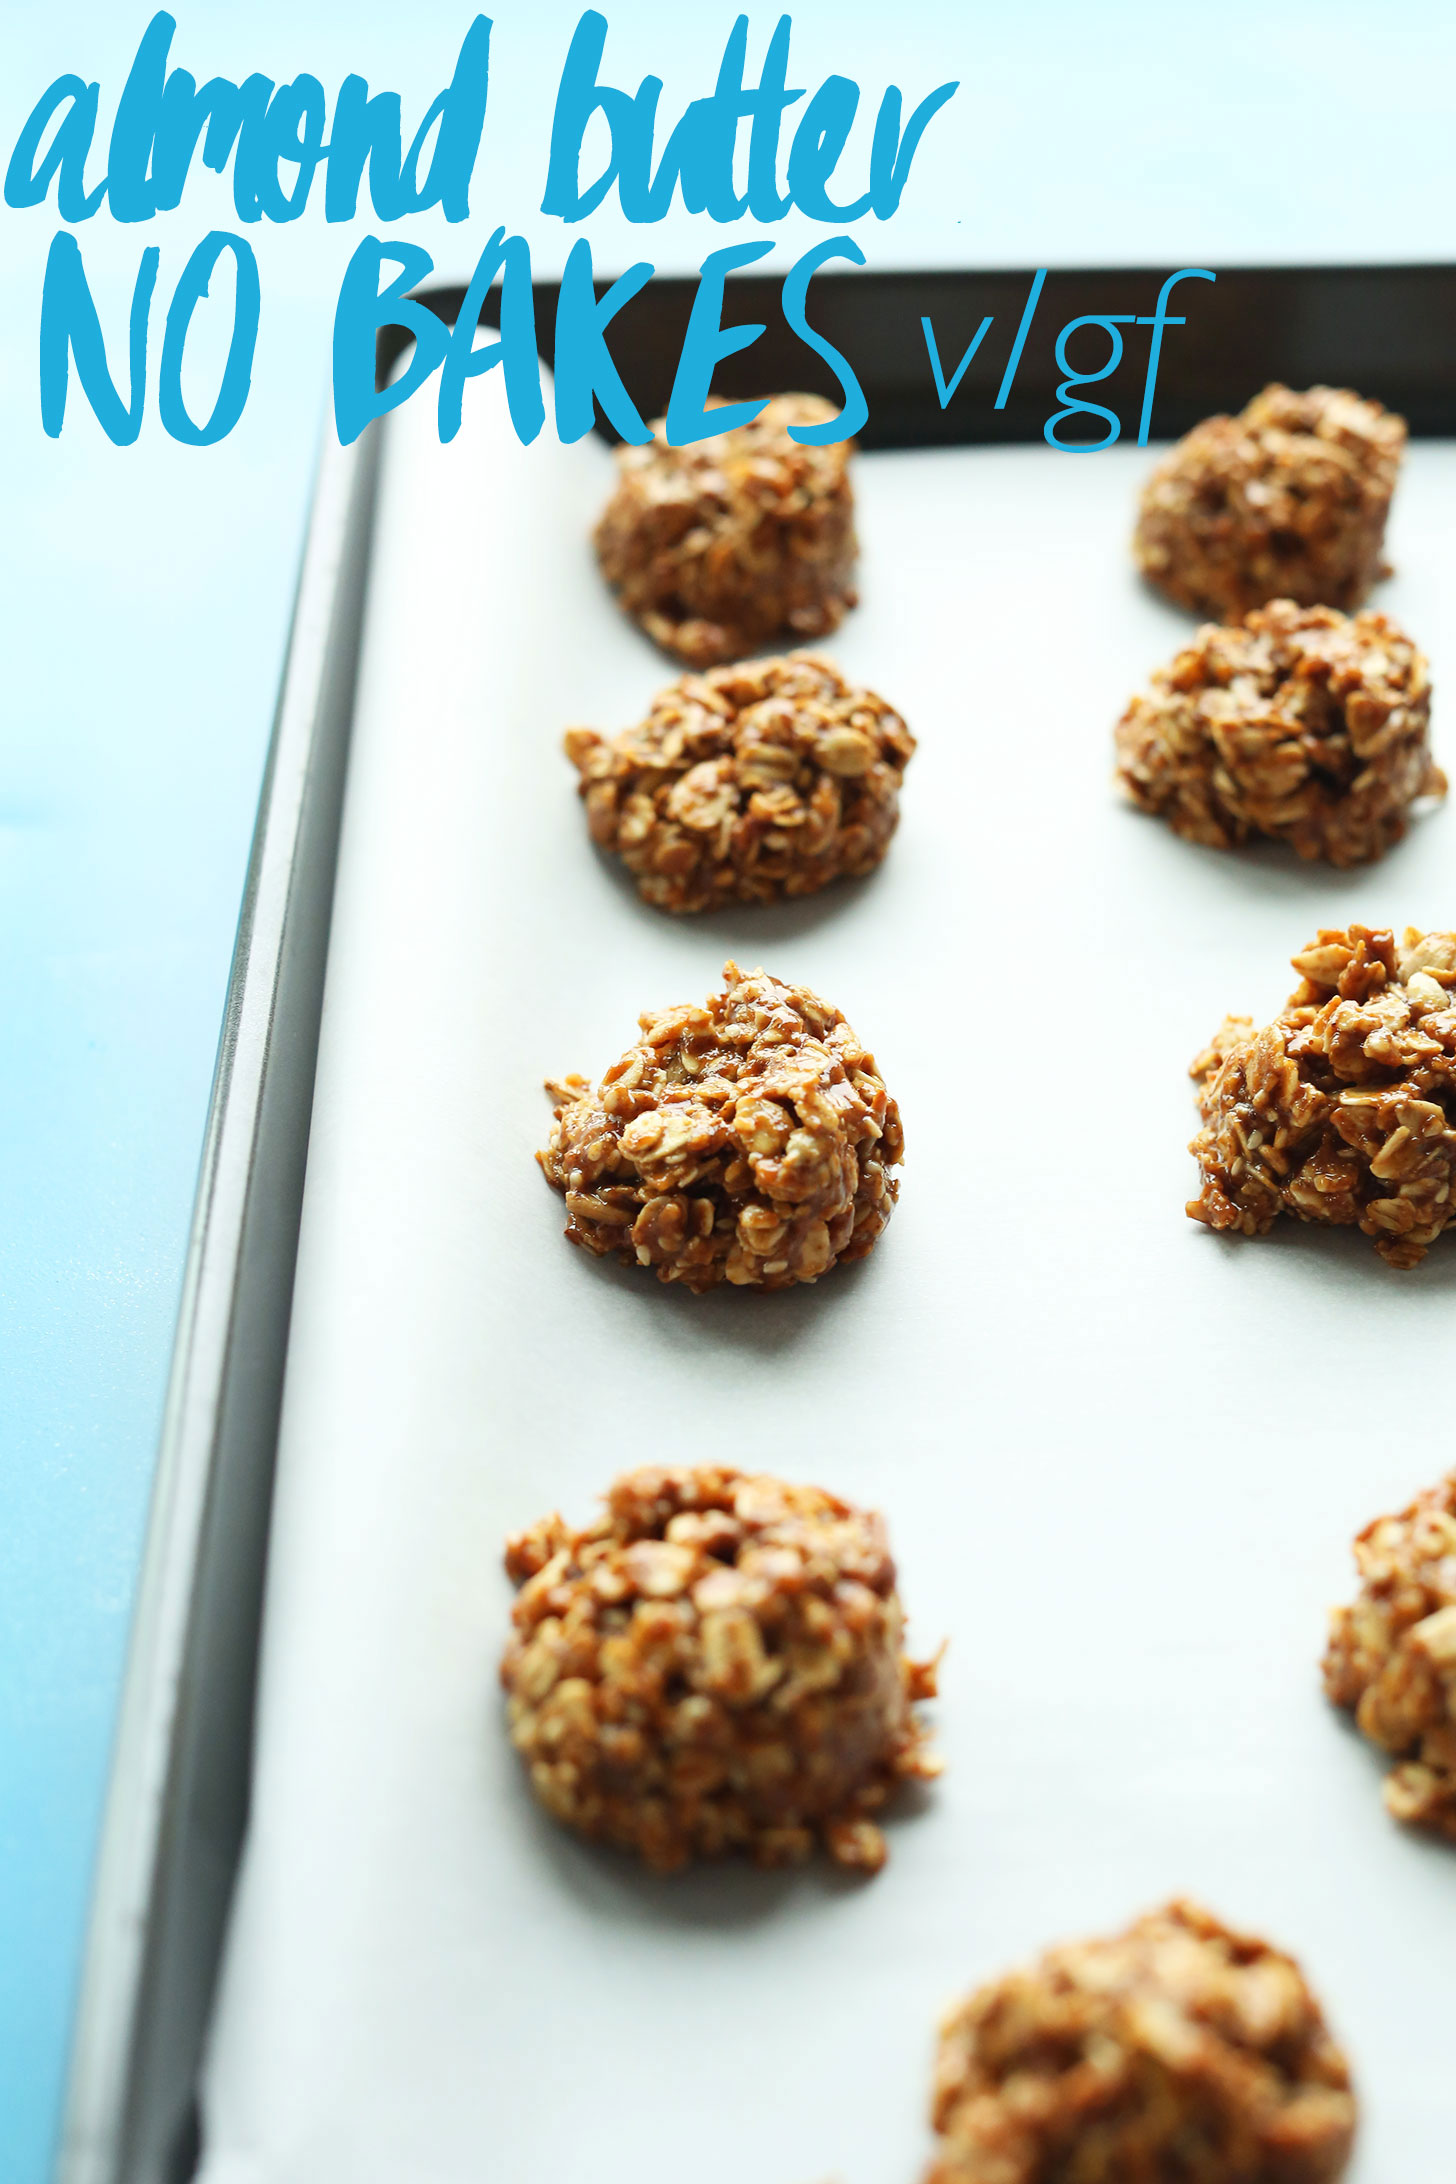 Parchment-lined baking sheet with our gluten-free vegan Almond Butter No-Bake Cookies